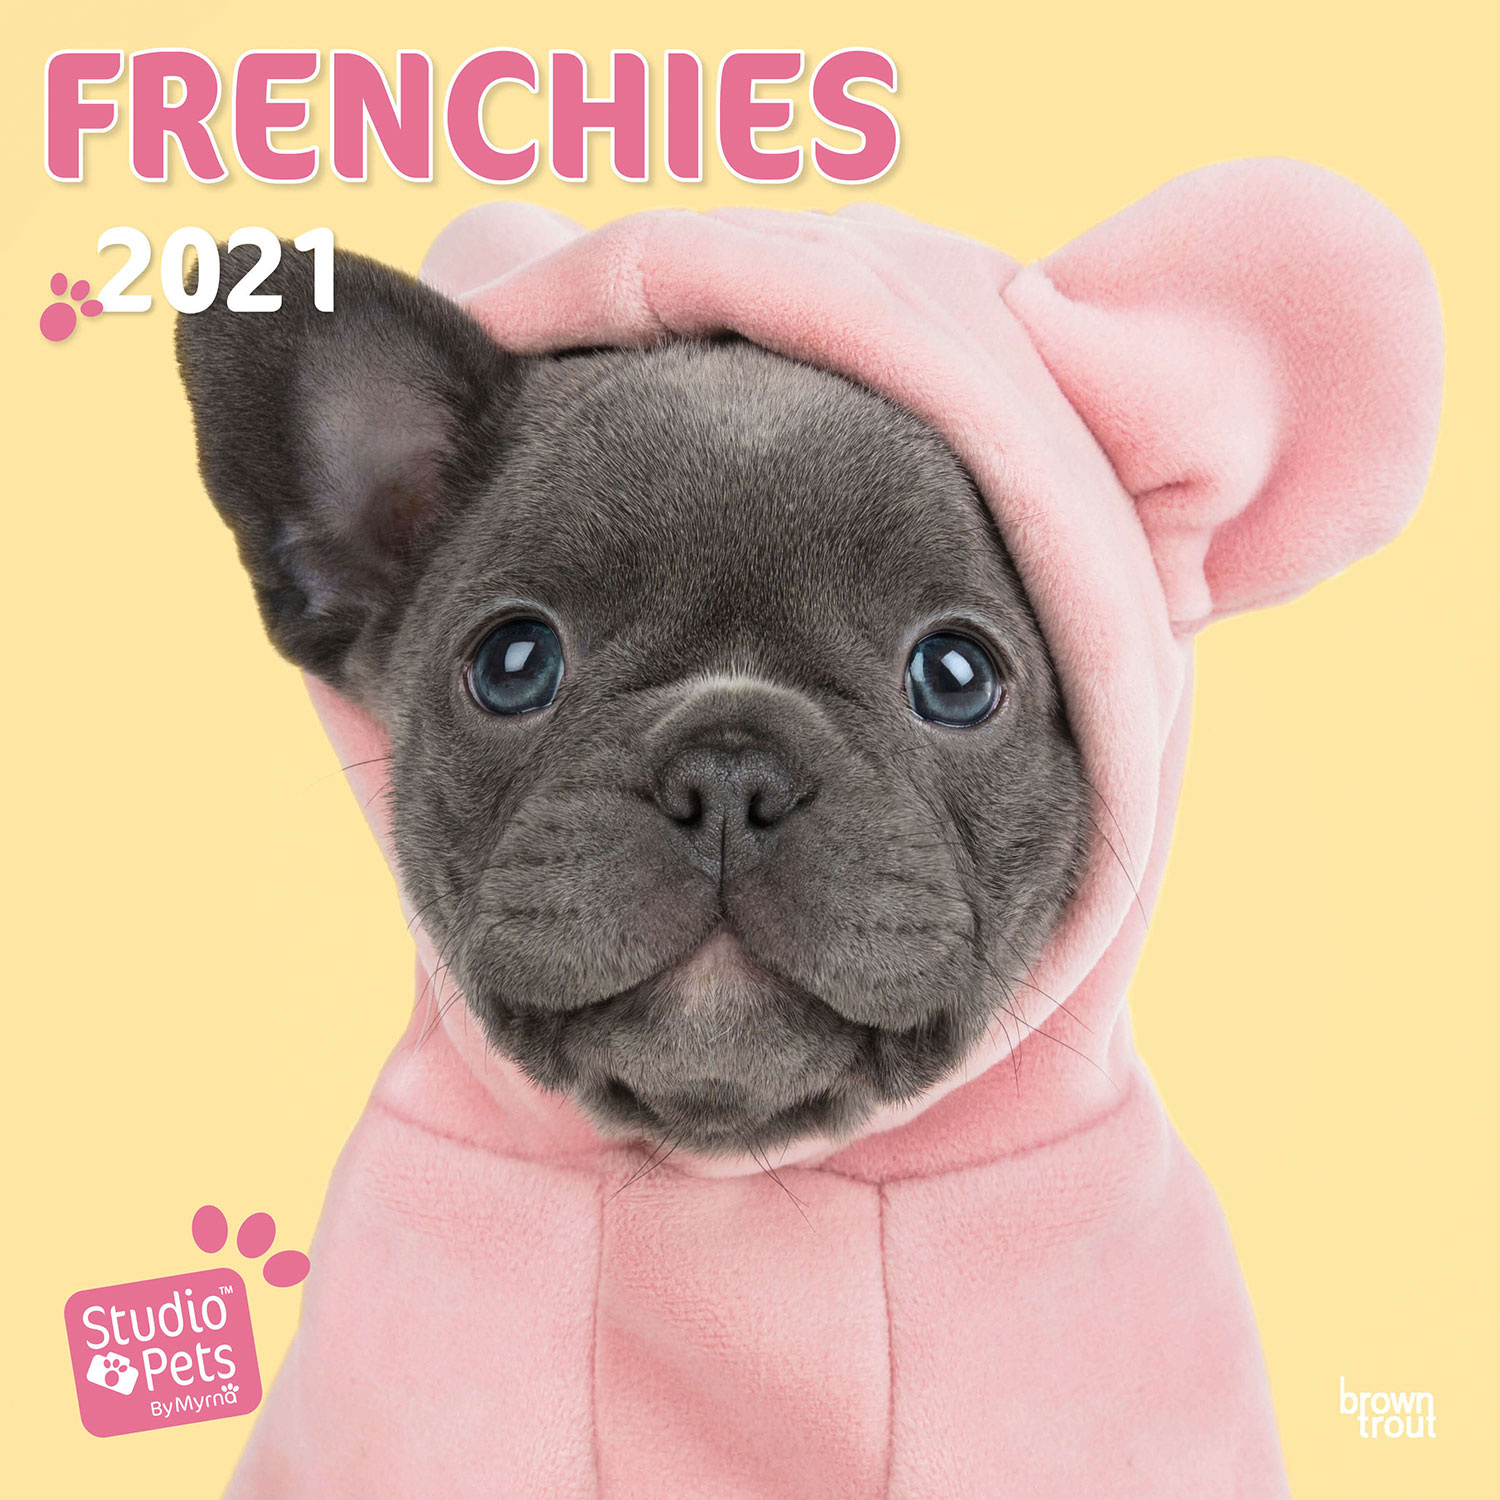 French Bulldogs Studio Pets Kalender 2021